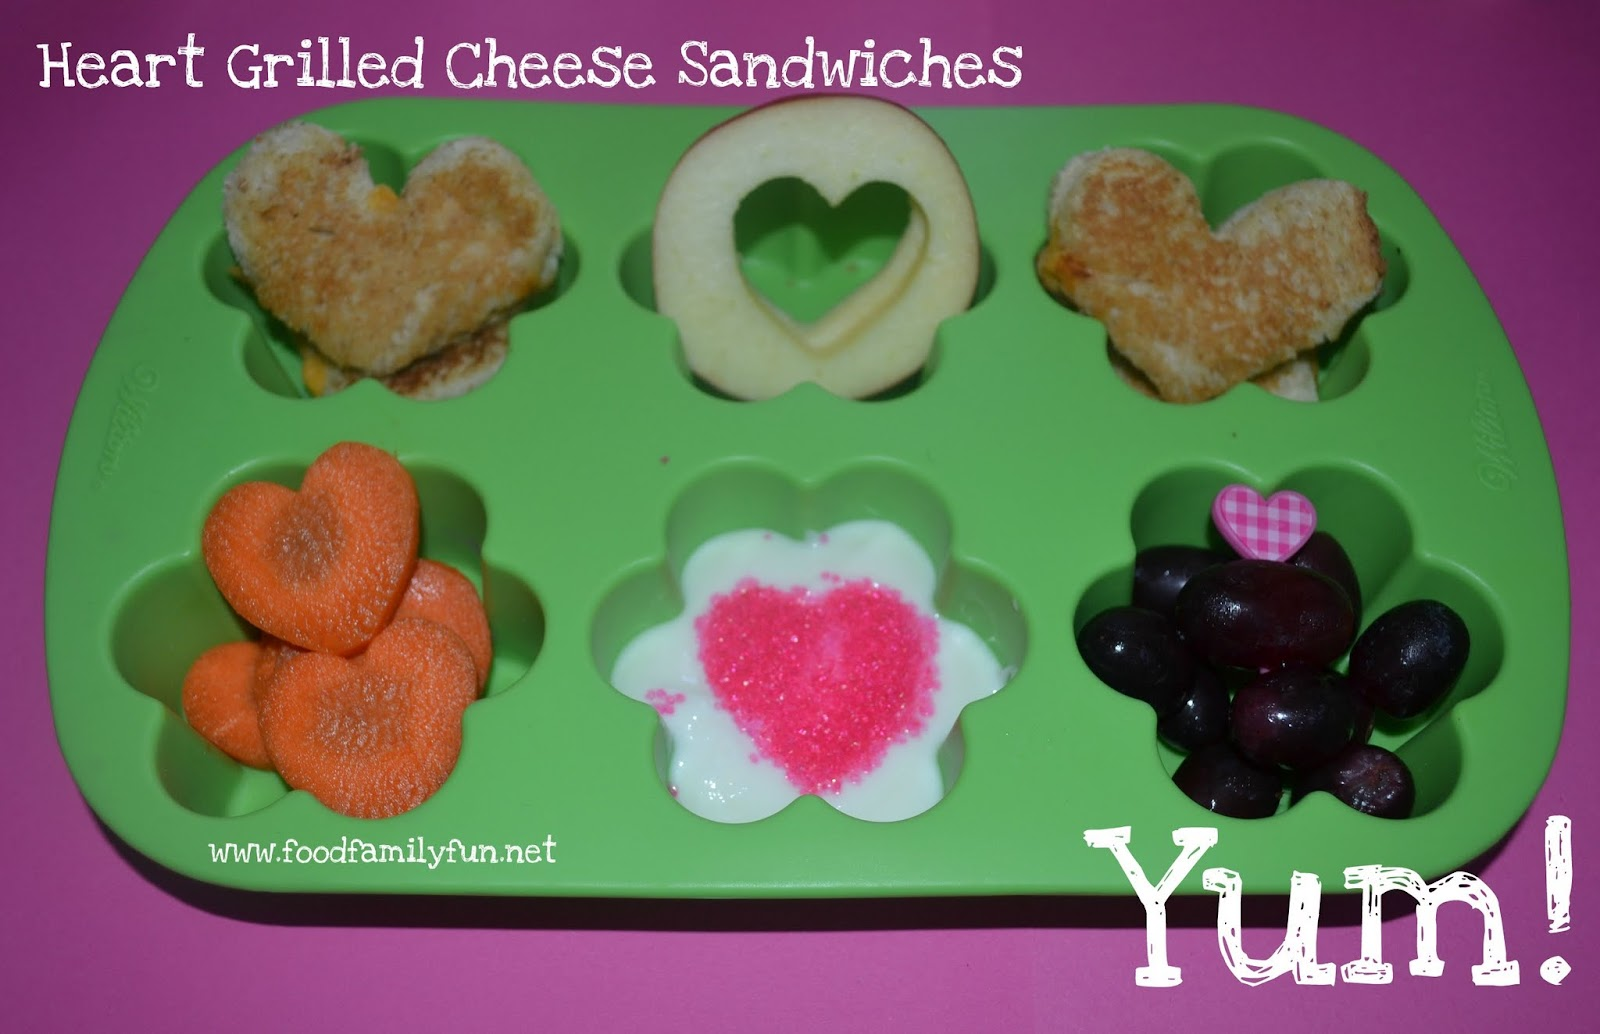 heart shaped grilled cheese sandwiches, apple heart cutouts,